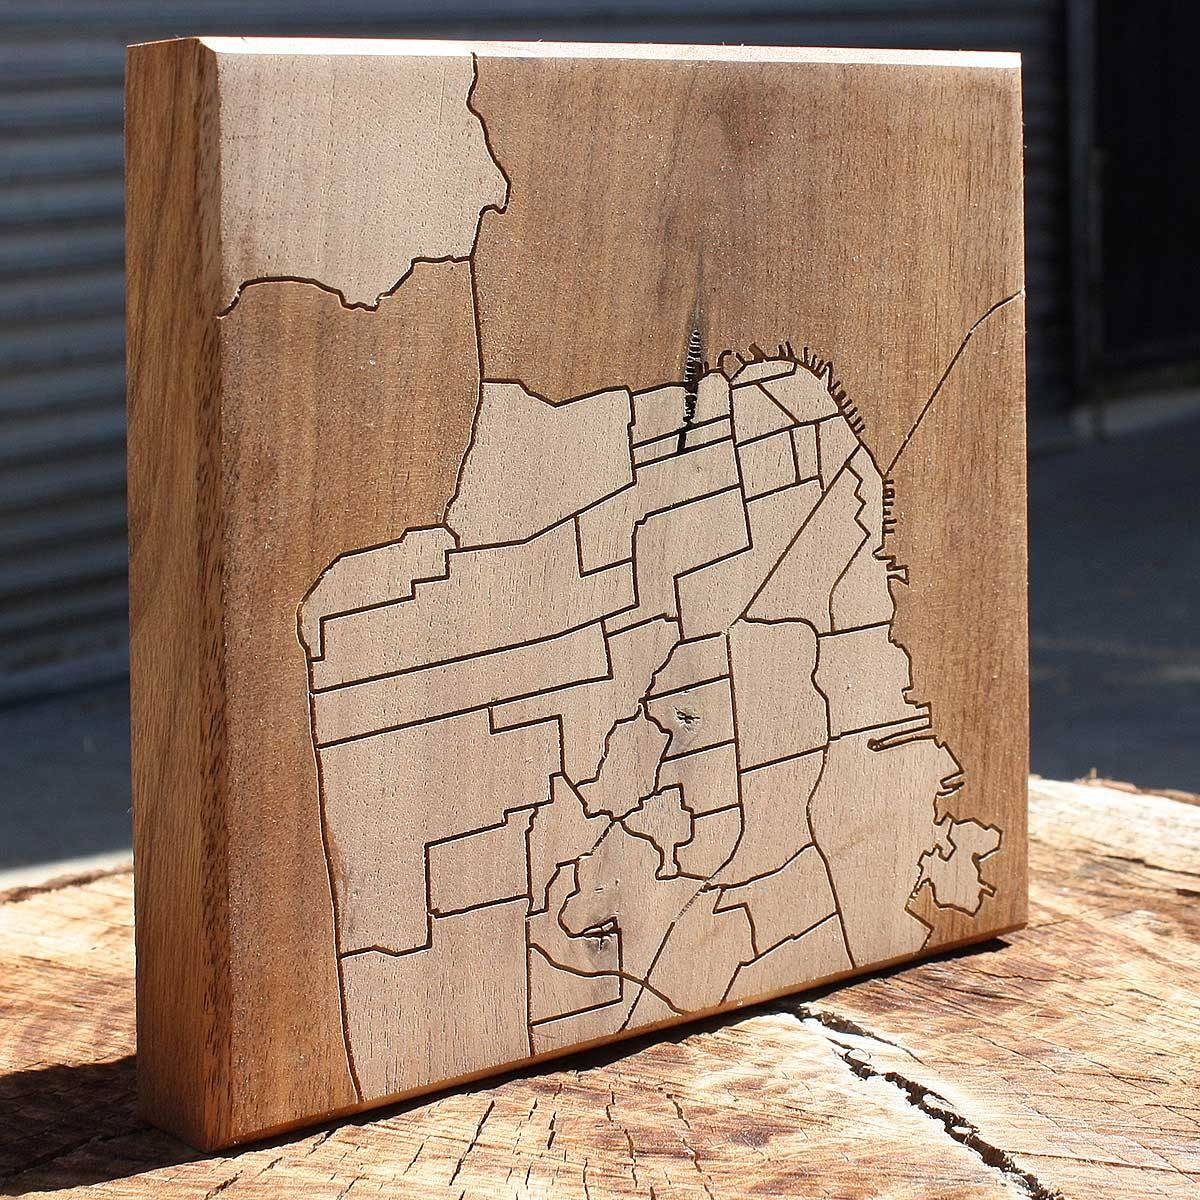 San Francisco Neighborhood Map Wooden Routing | California, San With Regard To 2018 San Francisco Map Wall Art (View 10 of 20)